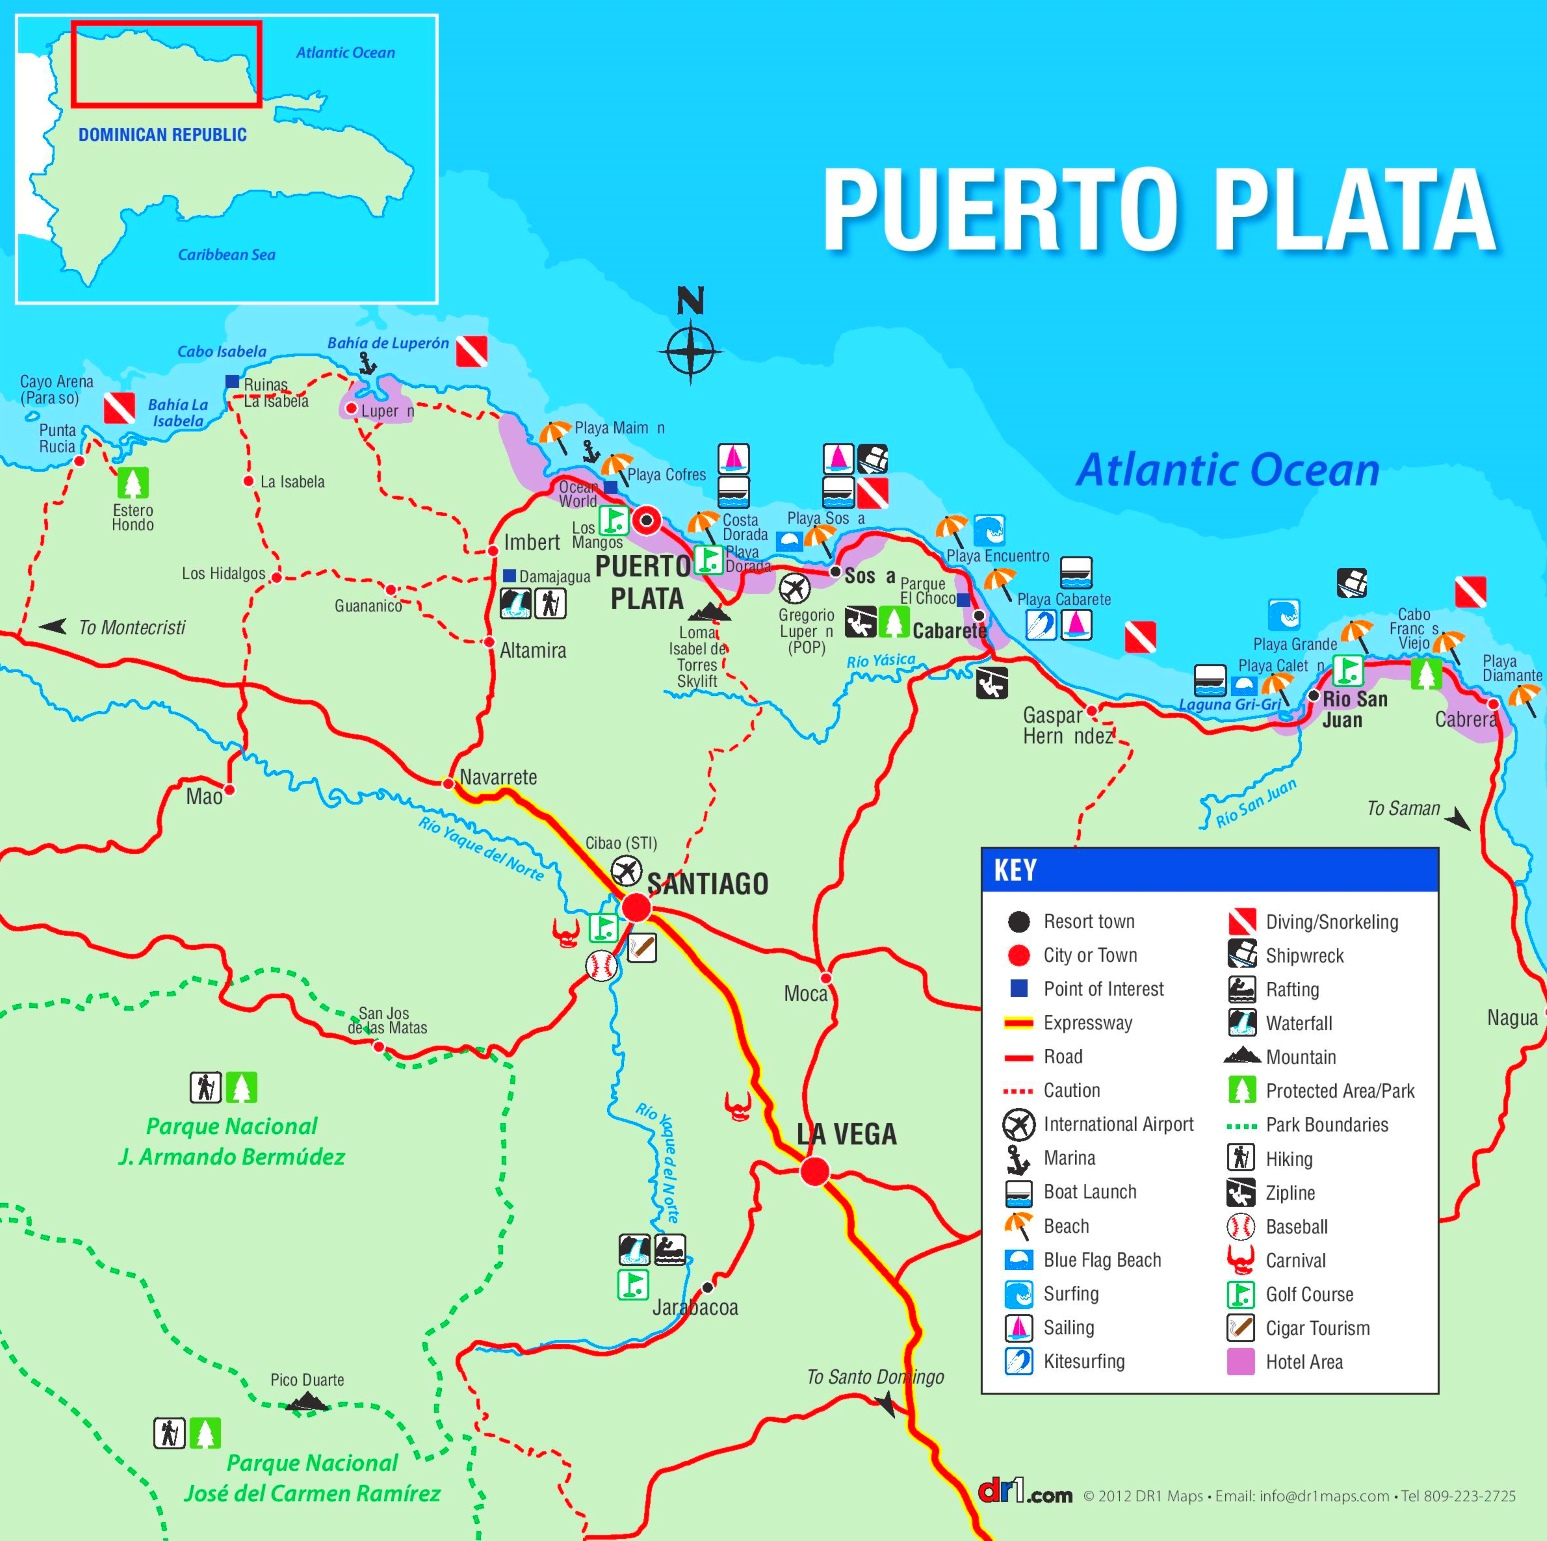 Puerto Plata tourist map